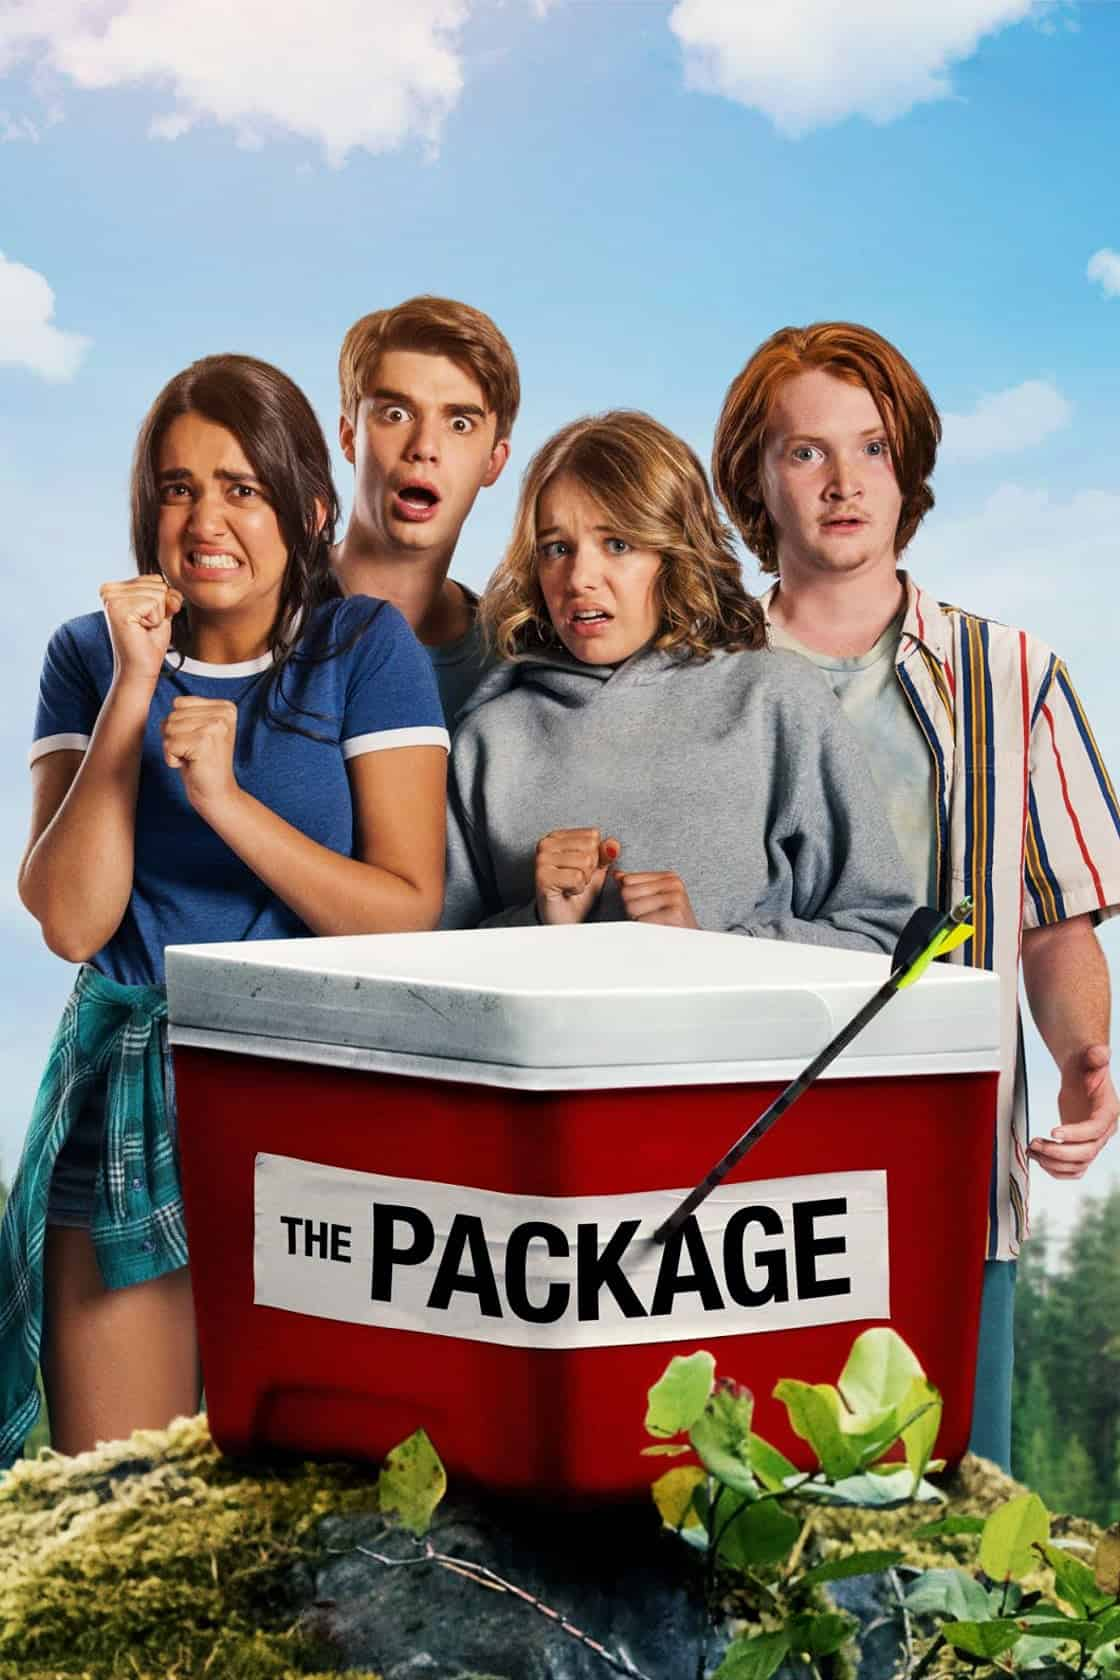 The Package, 2013